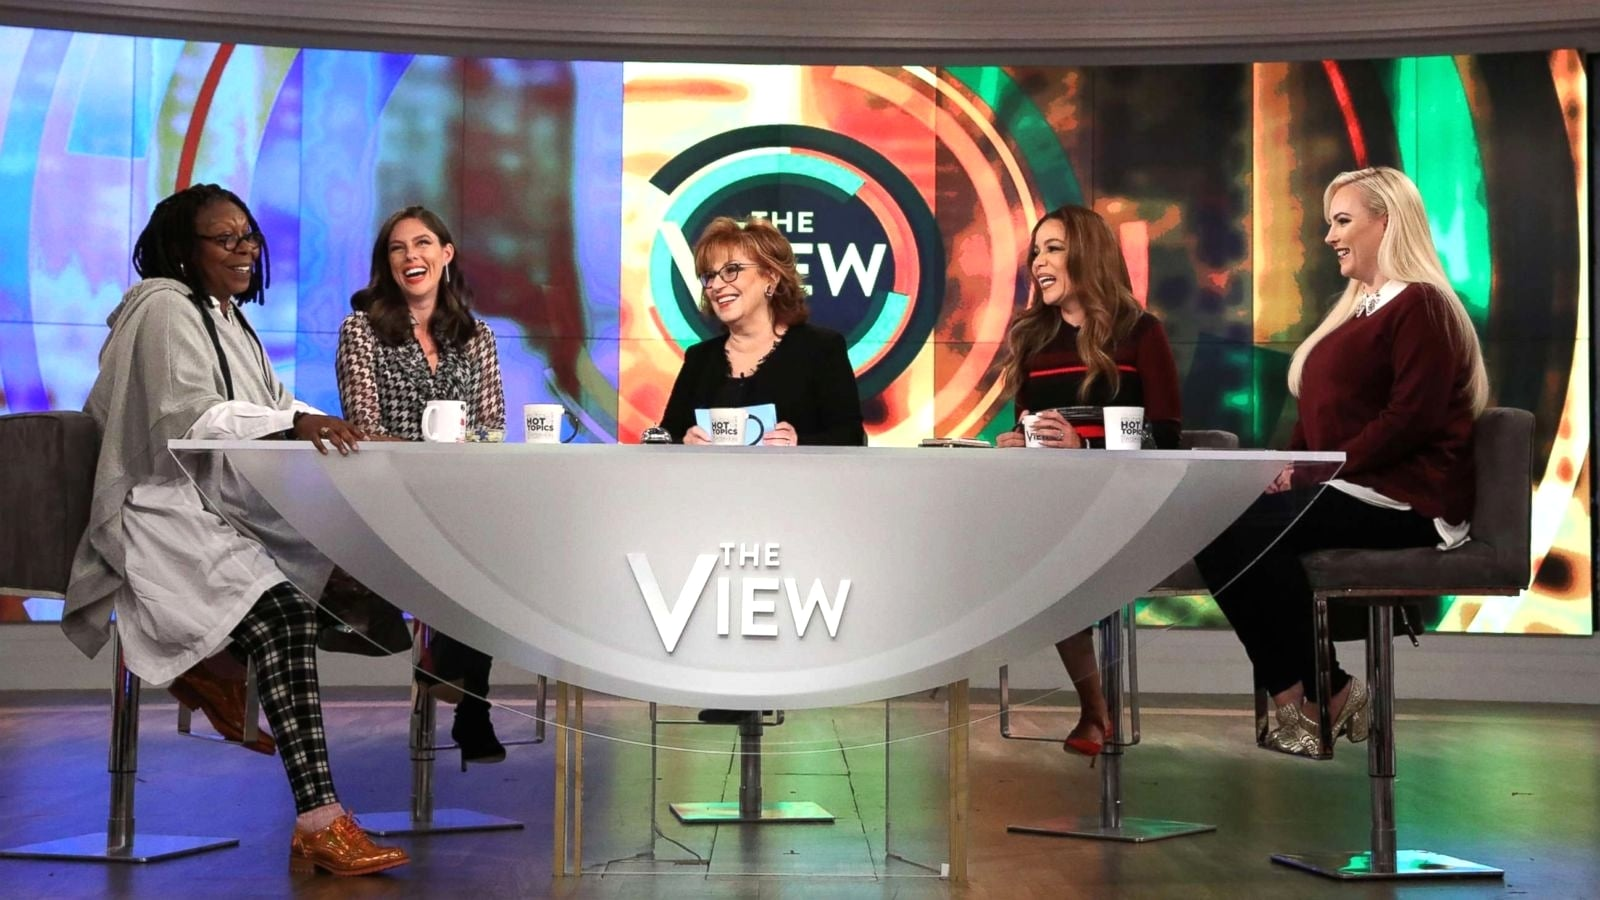 The View - Season 3 Episode 136 : Season 3, Episode 136